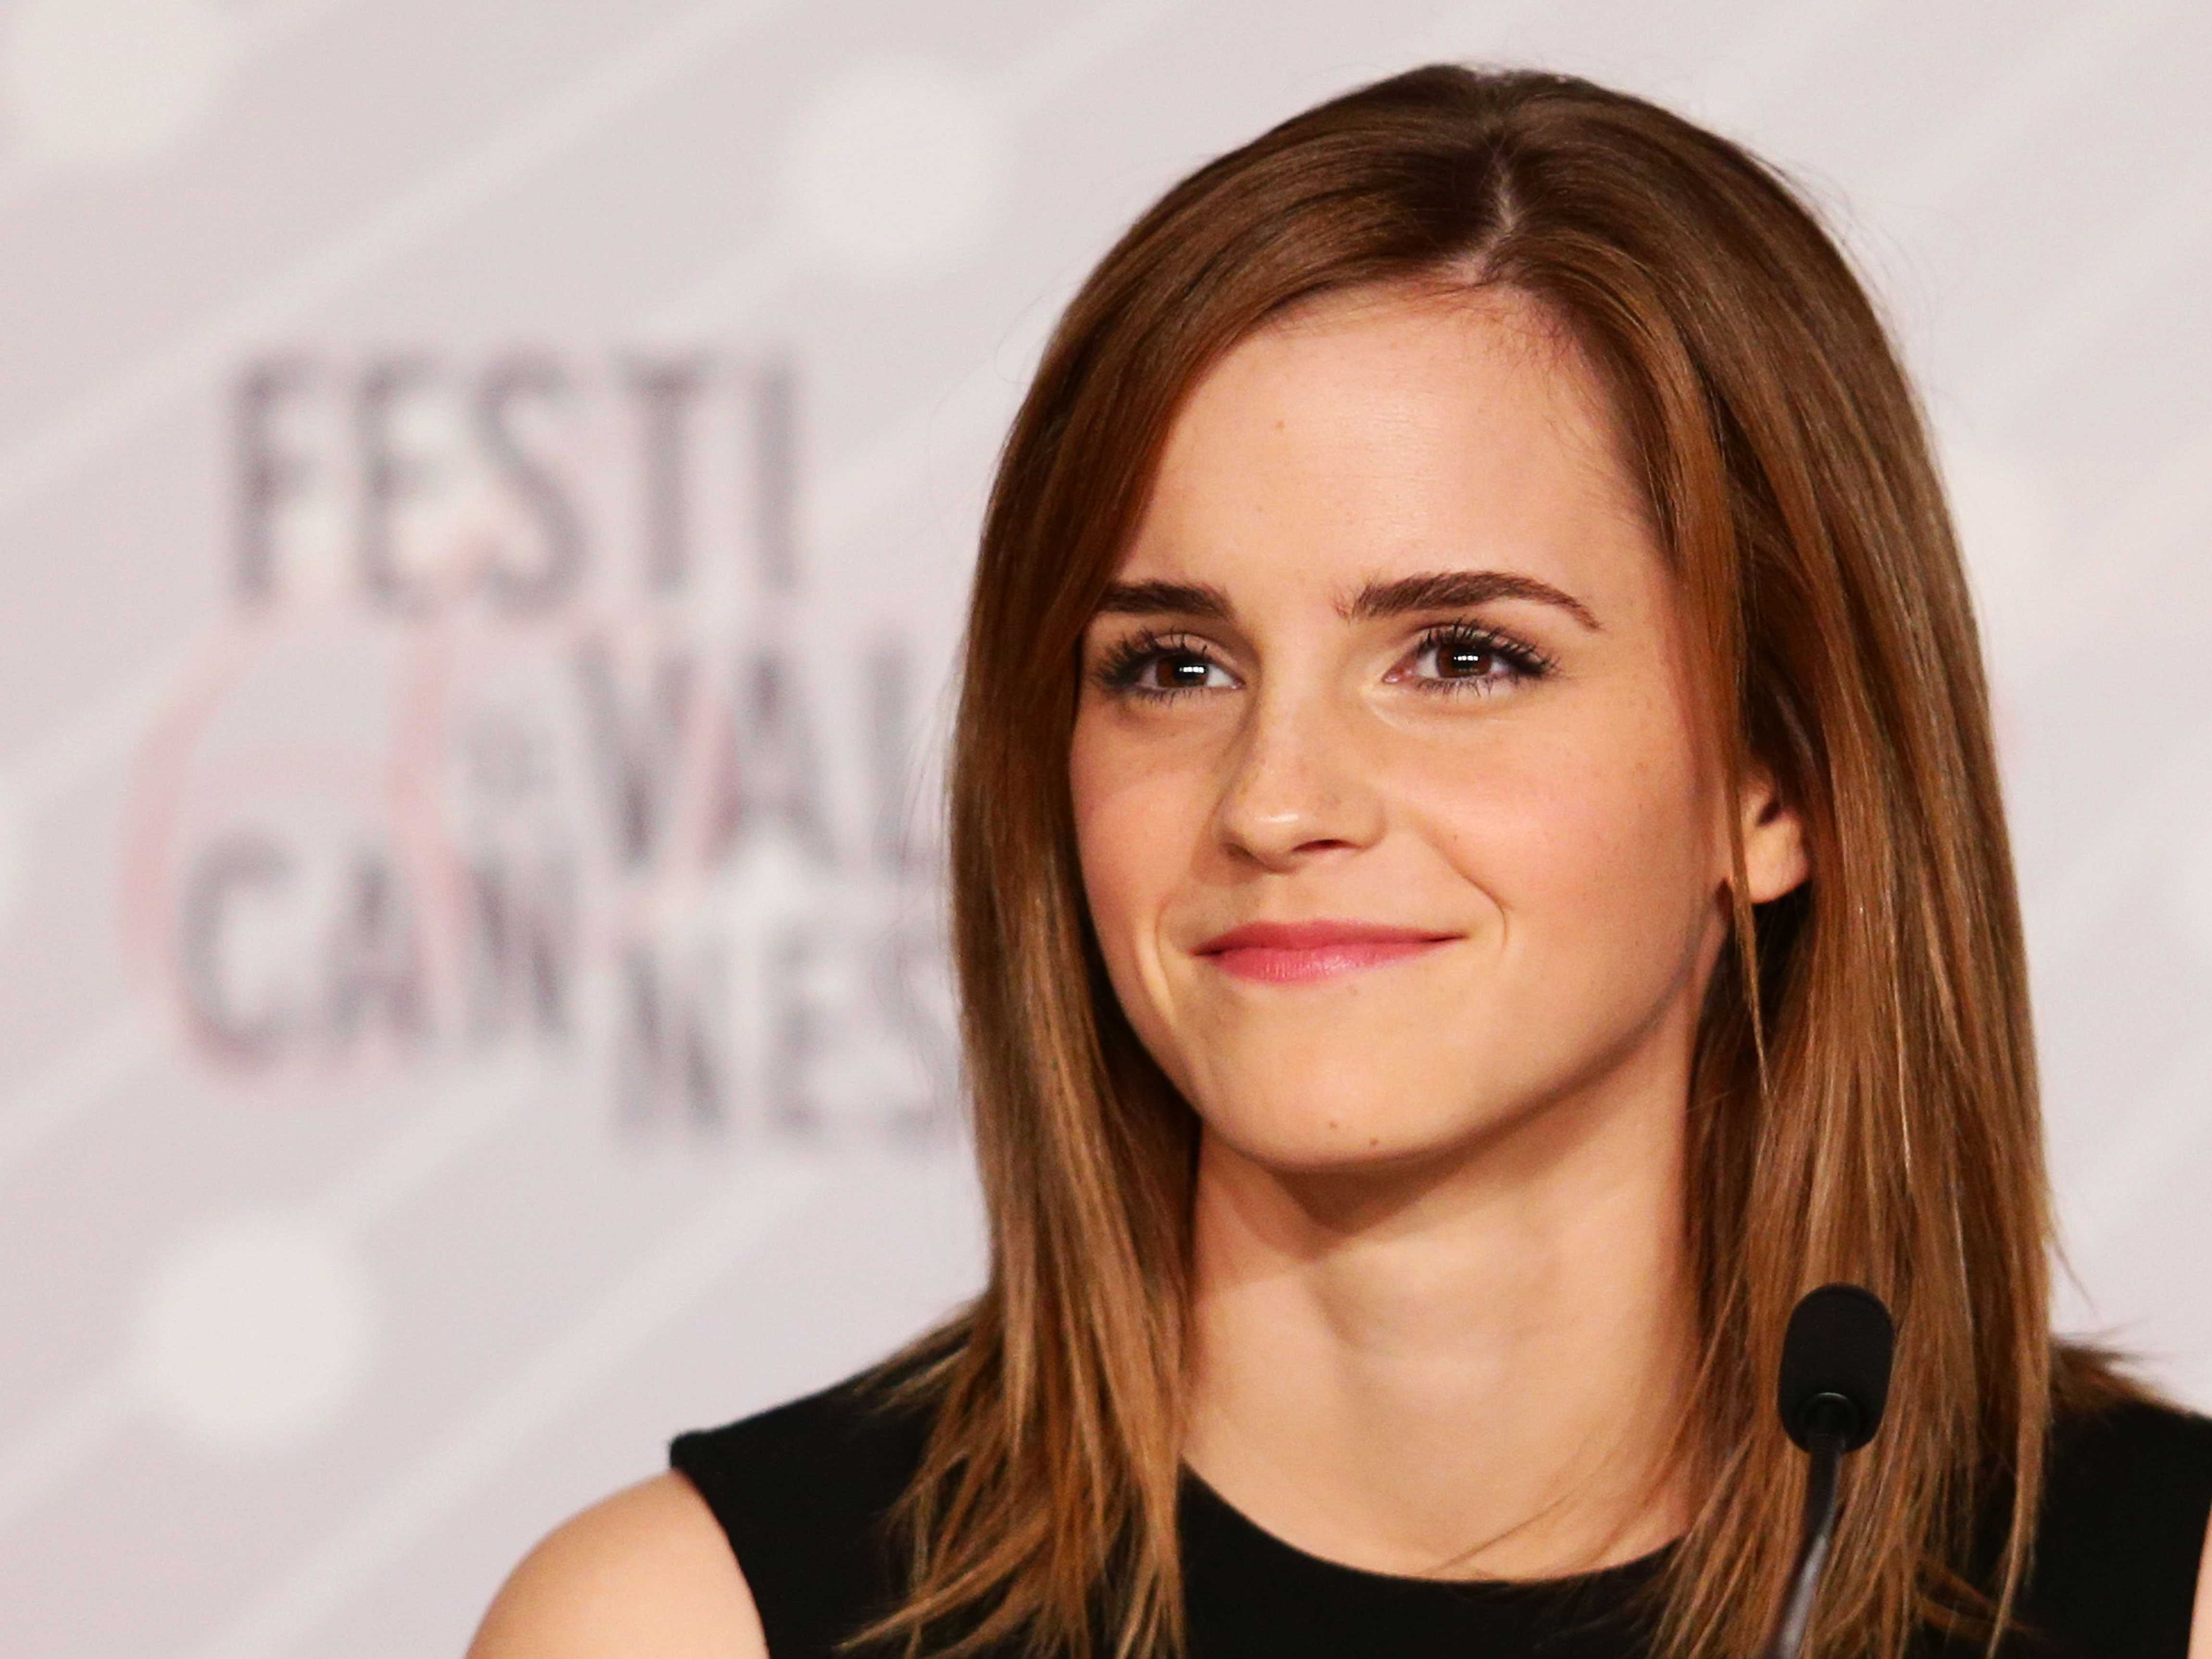 Emma Watson at Cannes Festival